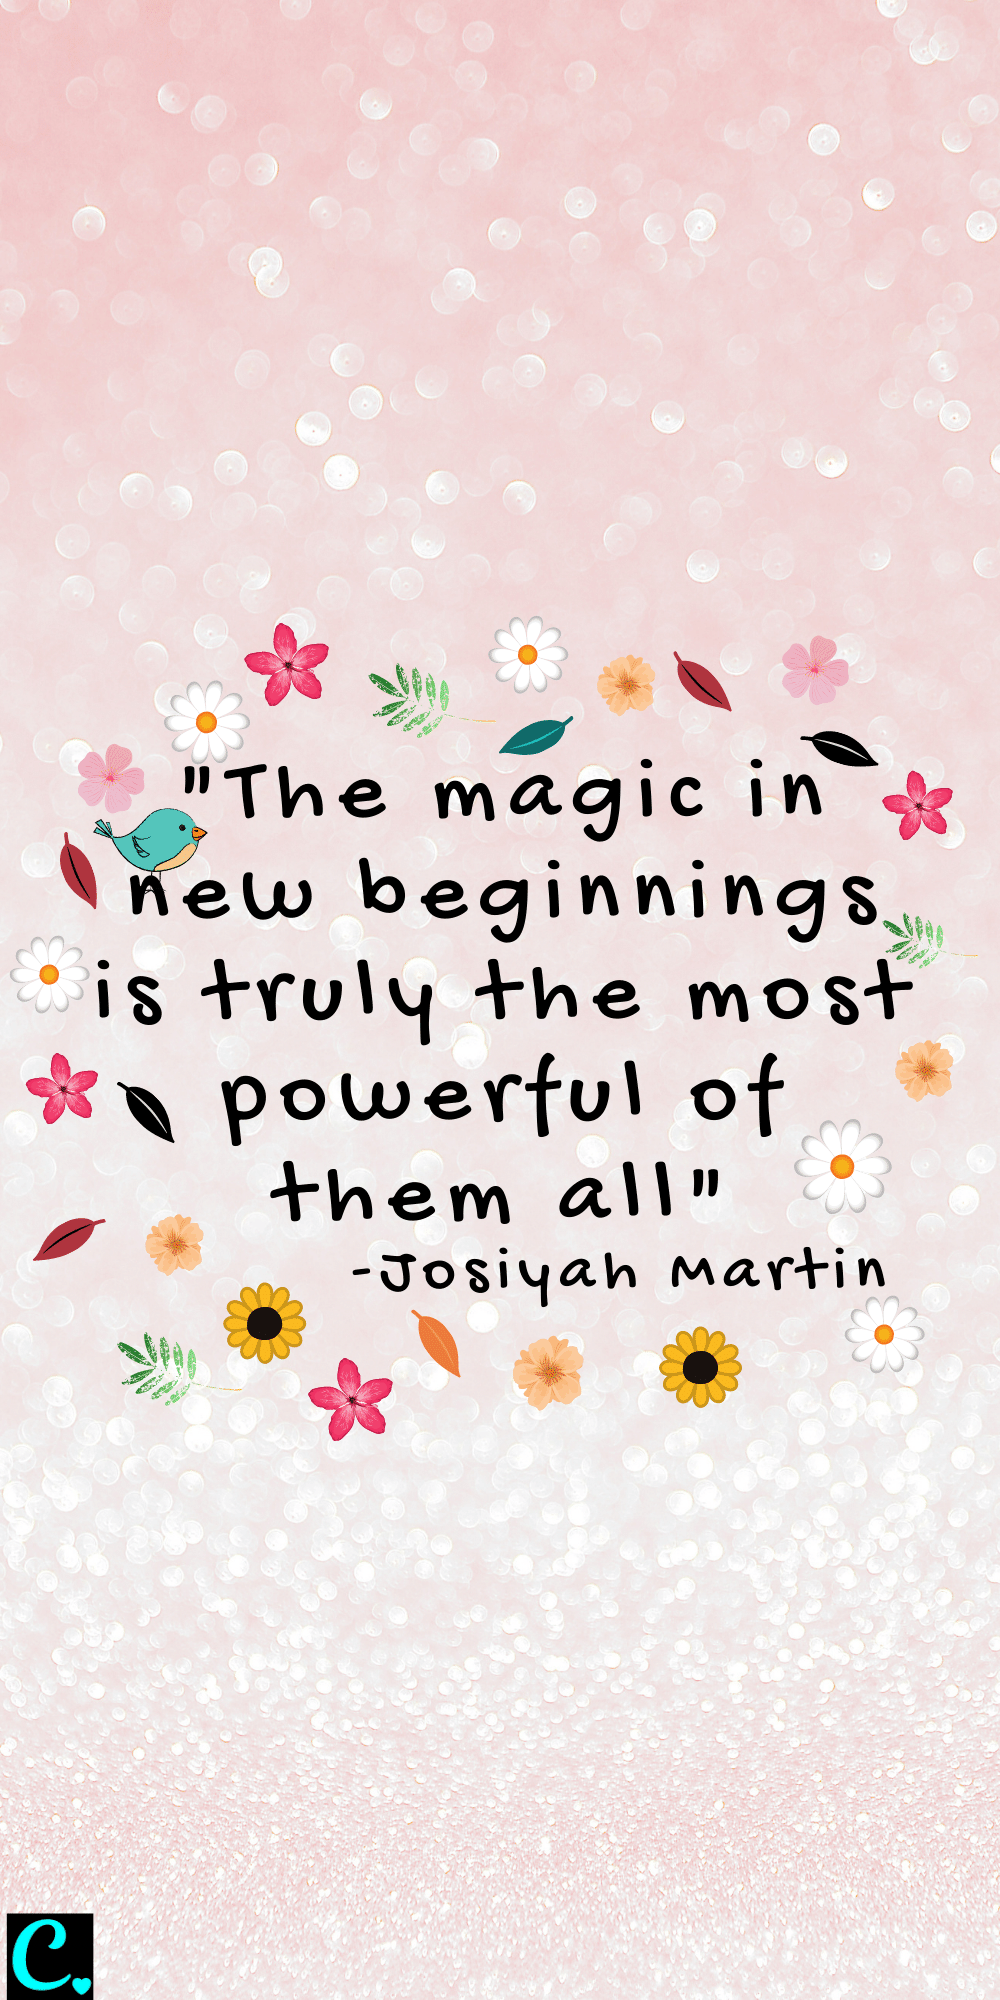 """""""The magic in new beginnings is truly the most powerful of them all"""" - Josiyah Martin"""